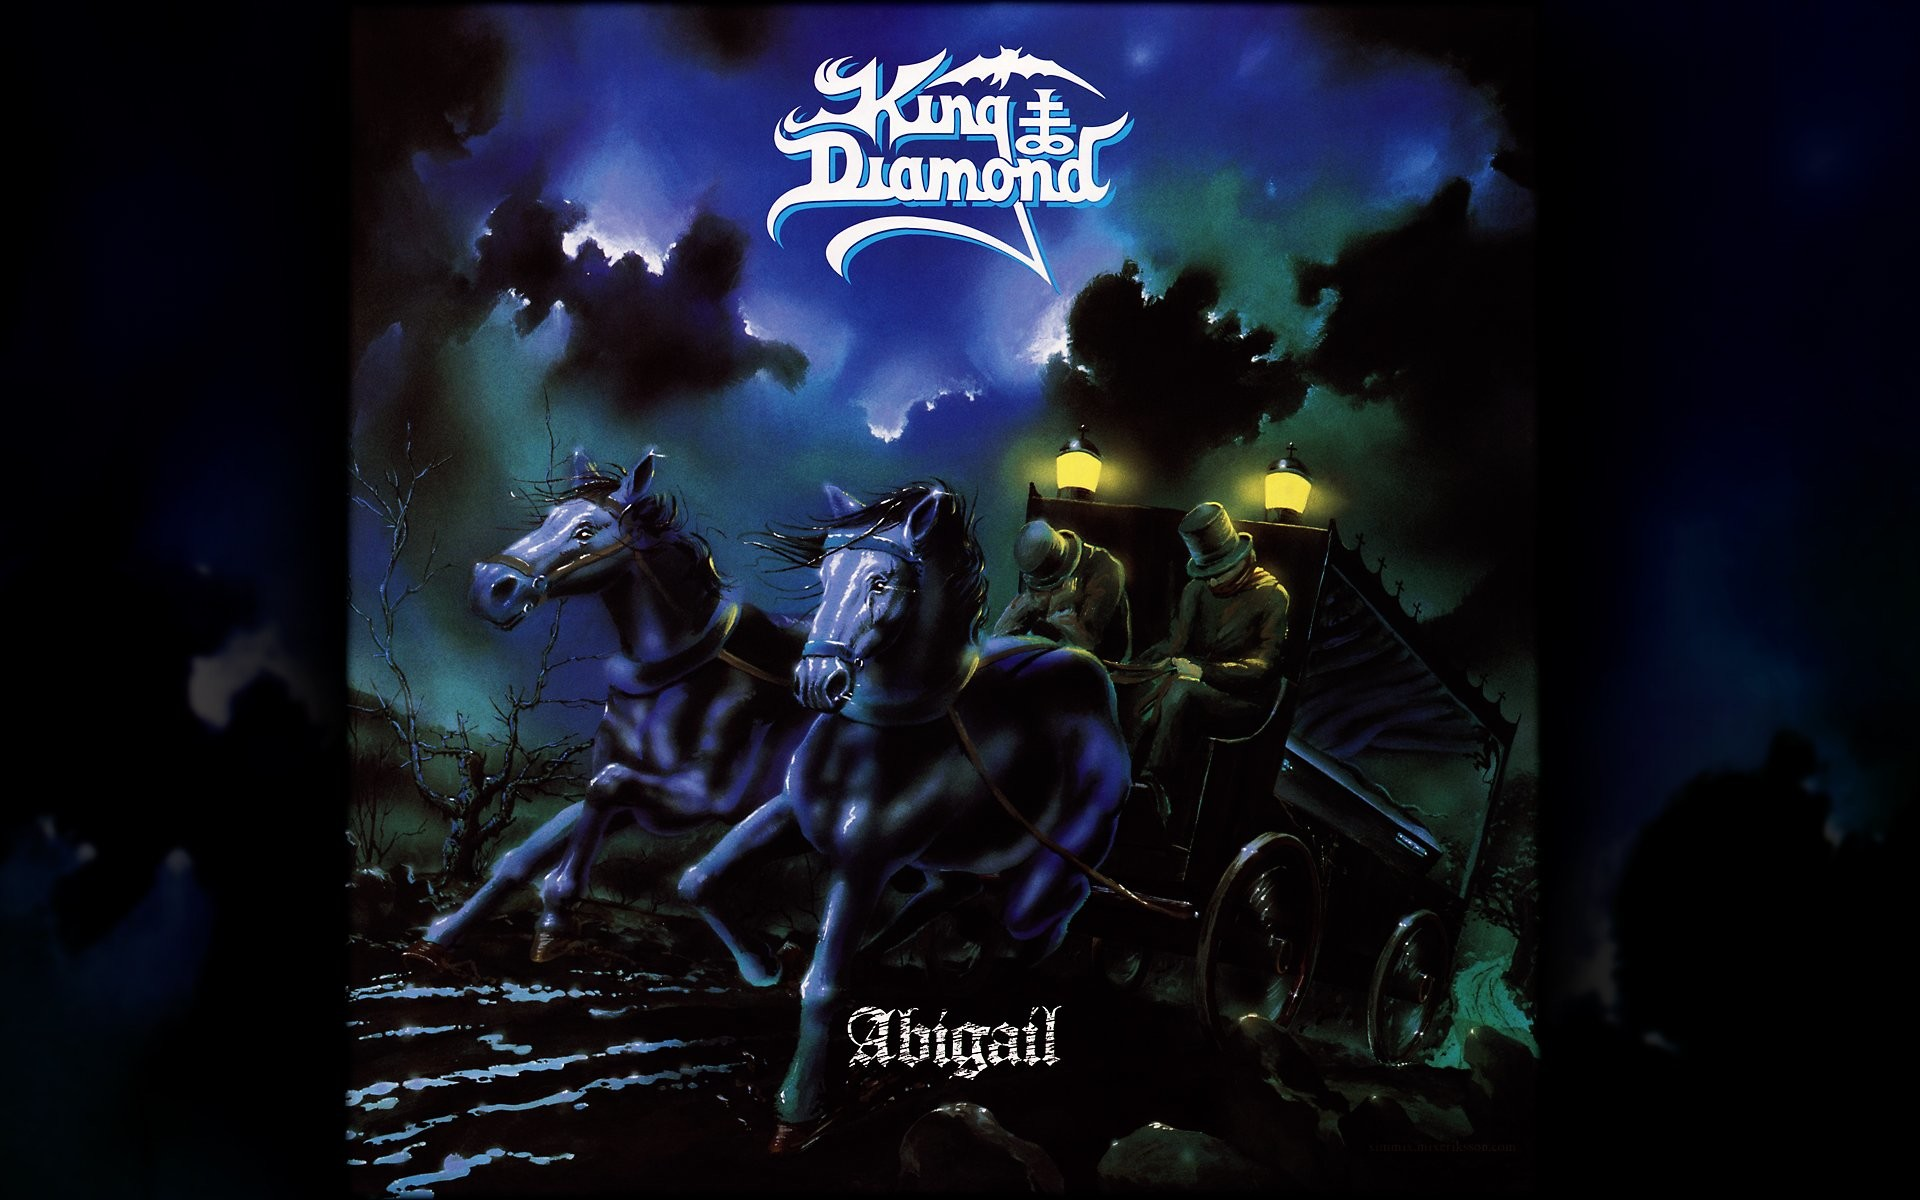 1920x1200 HD Wallpaper | Background ID:307118.  Music King Diamond